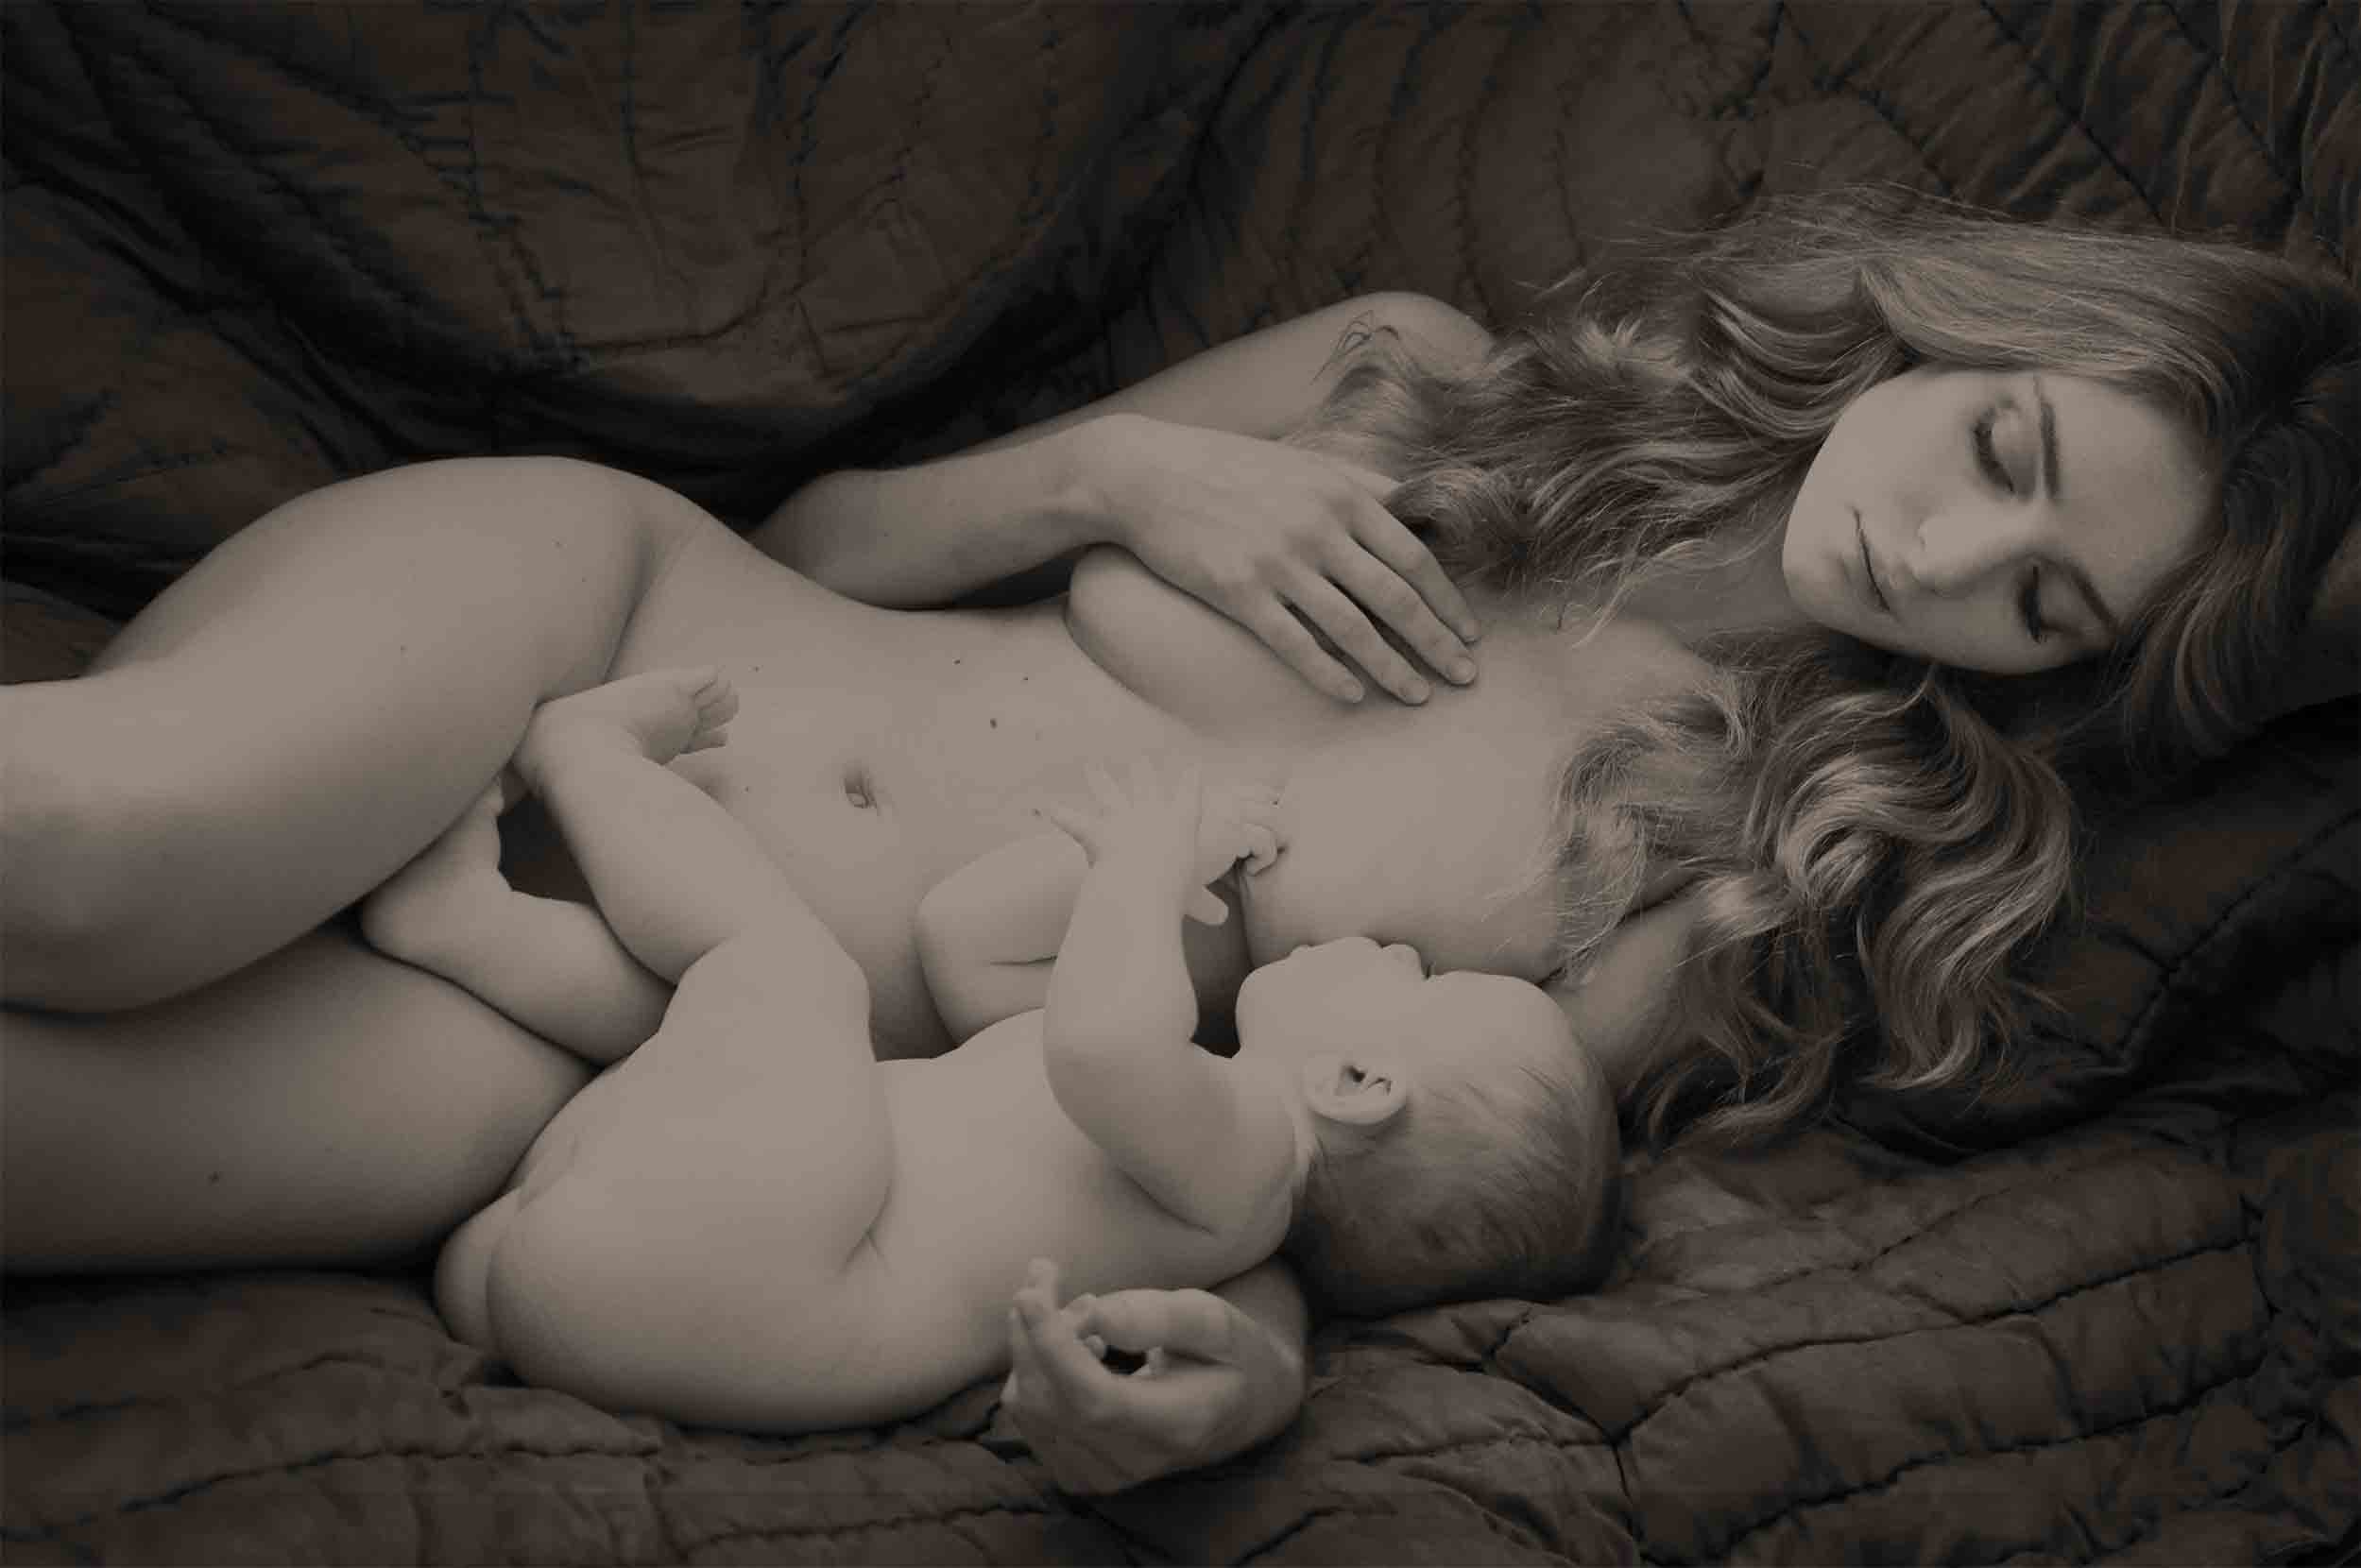 Mother and baby fine artistic nude portrait photographer